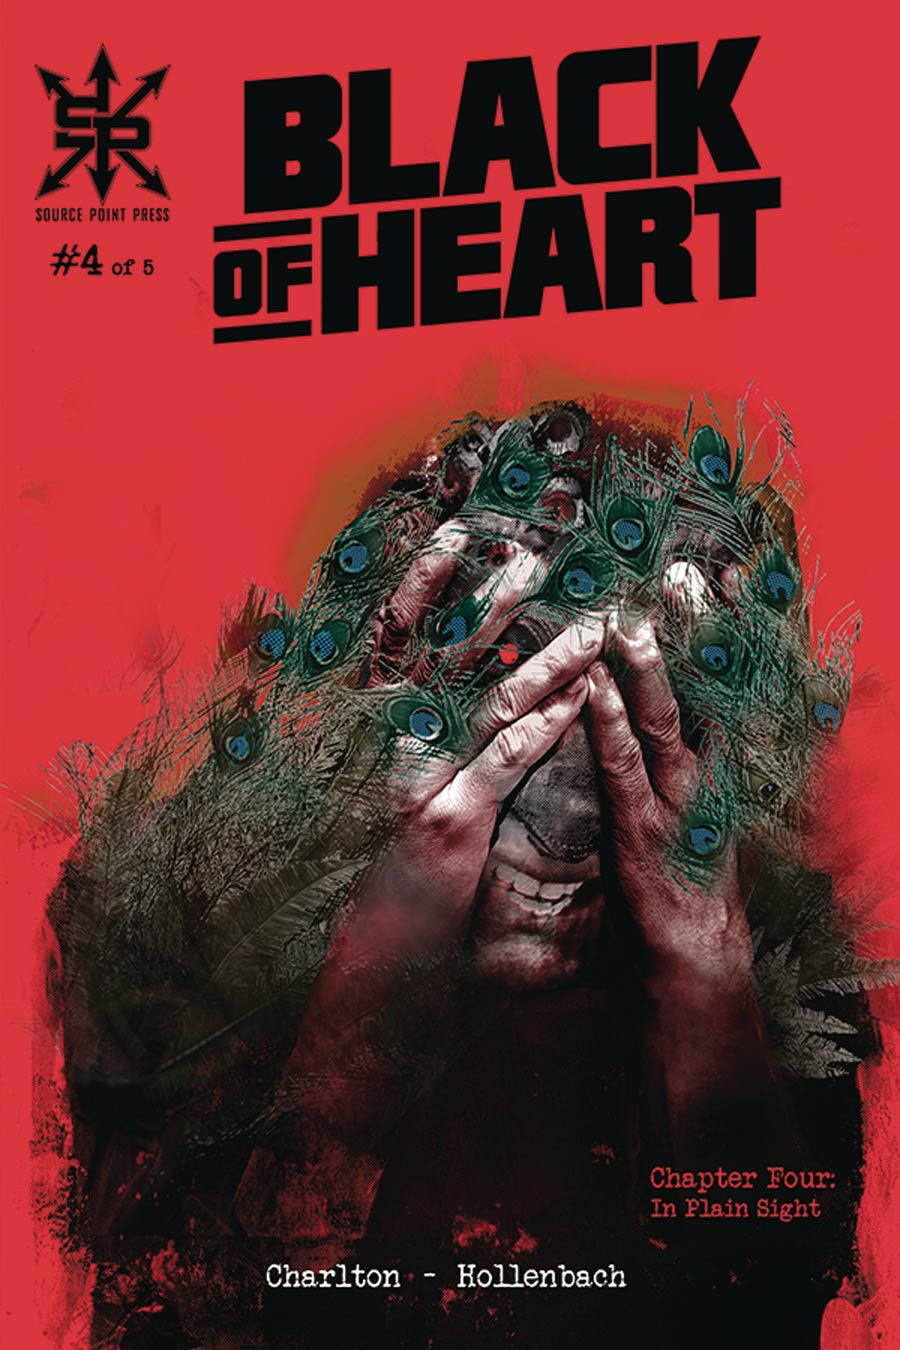 Black Of Heart #4